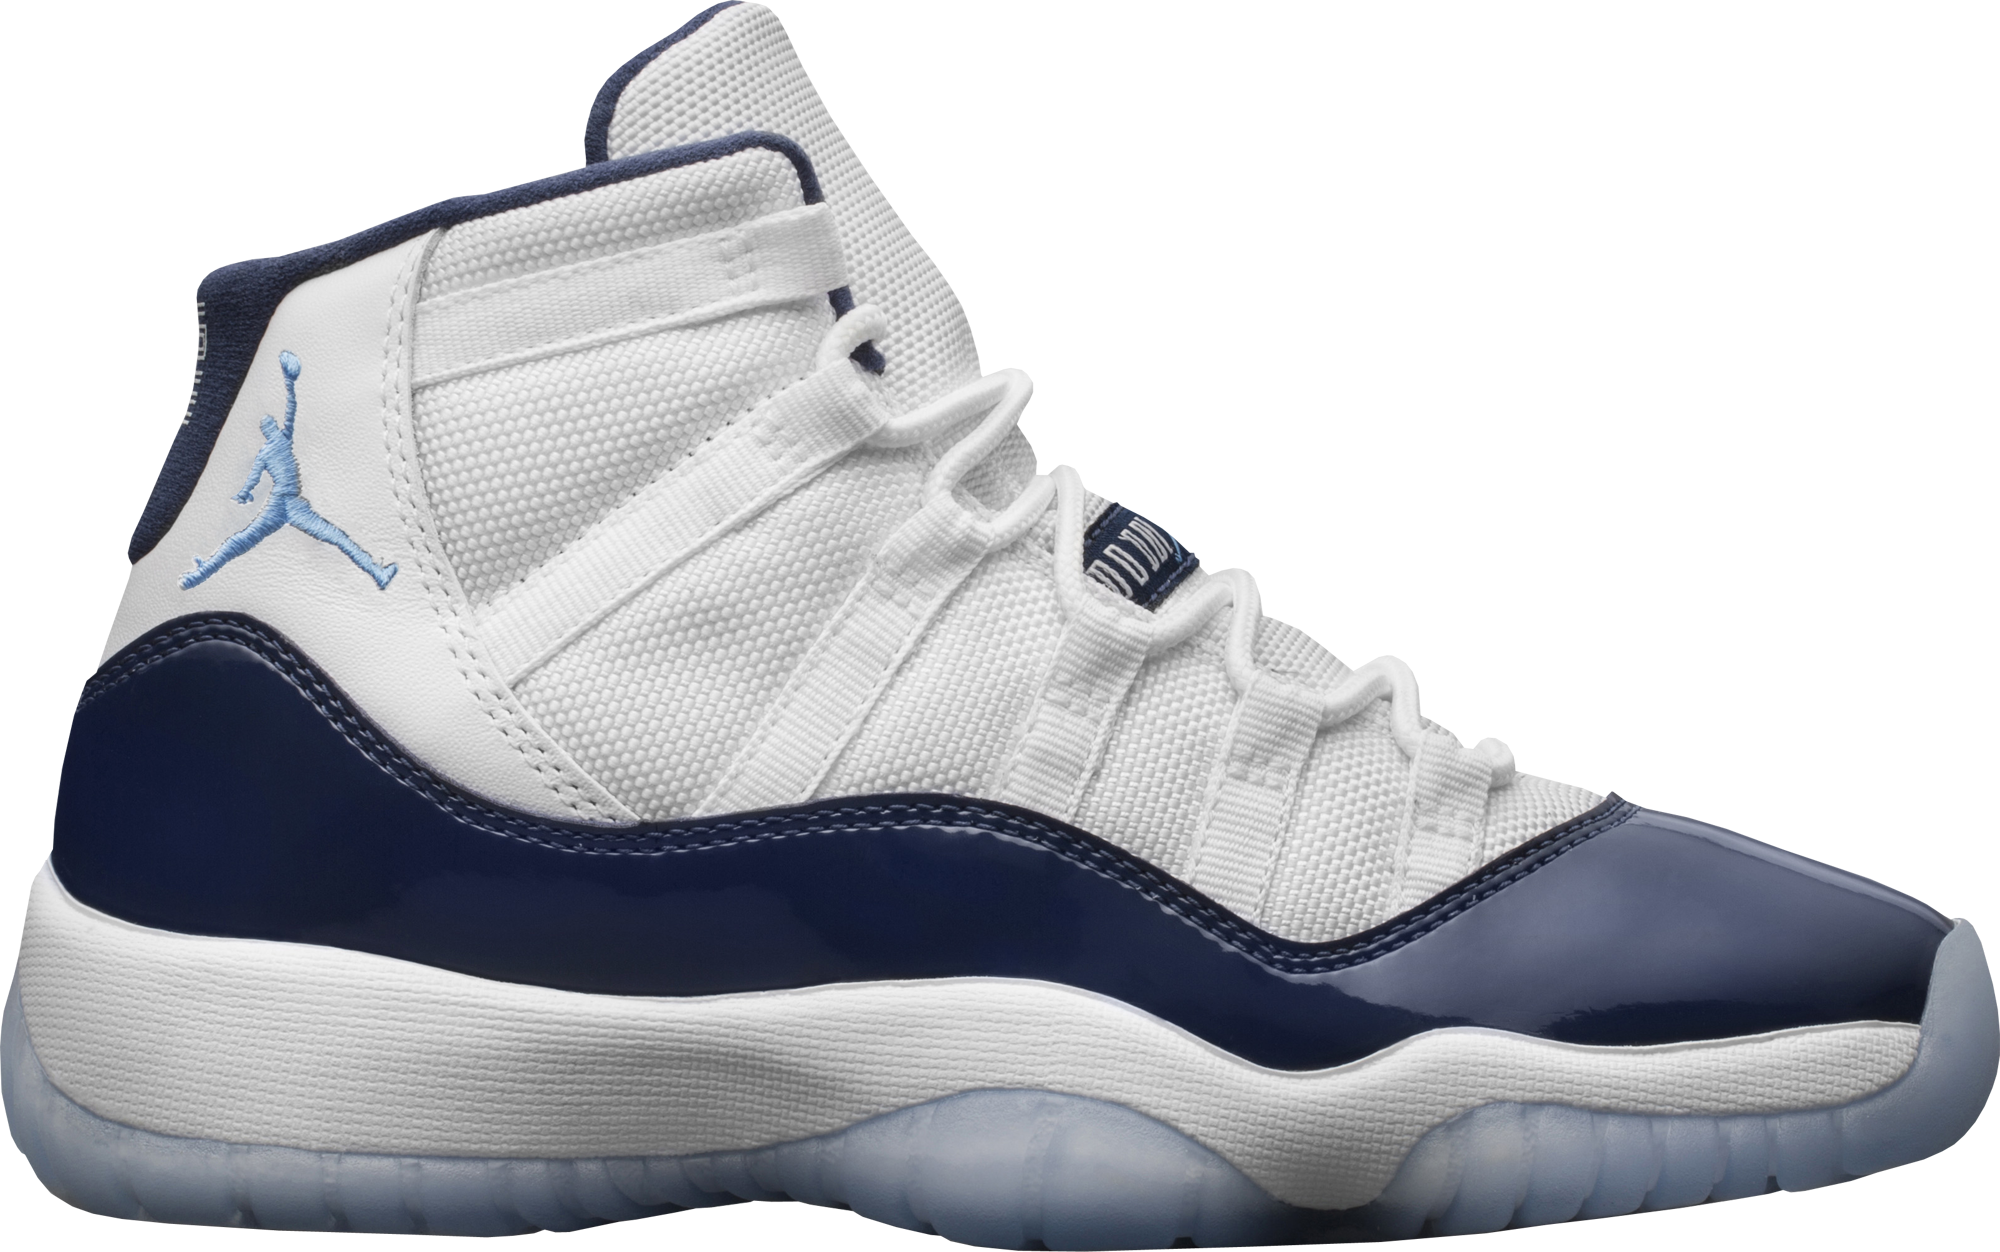 Jordan 11 Retro UNC Win Like 82 (GS)